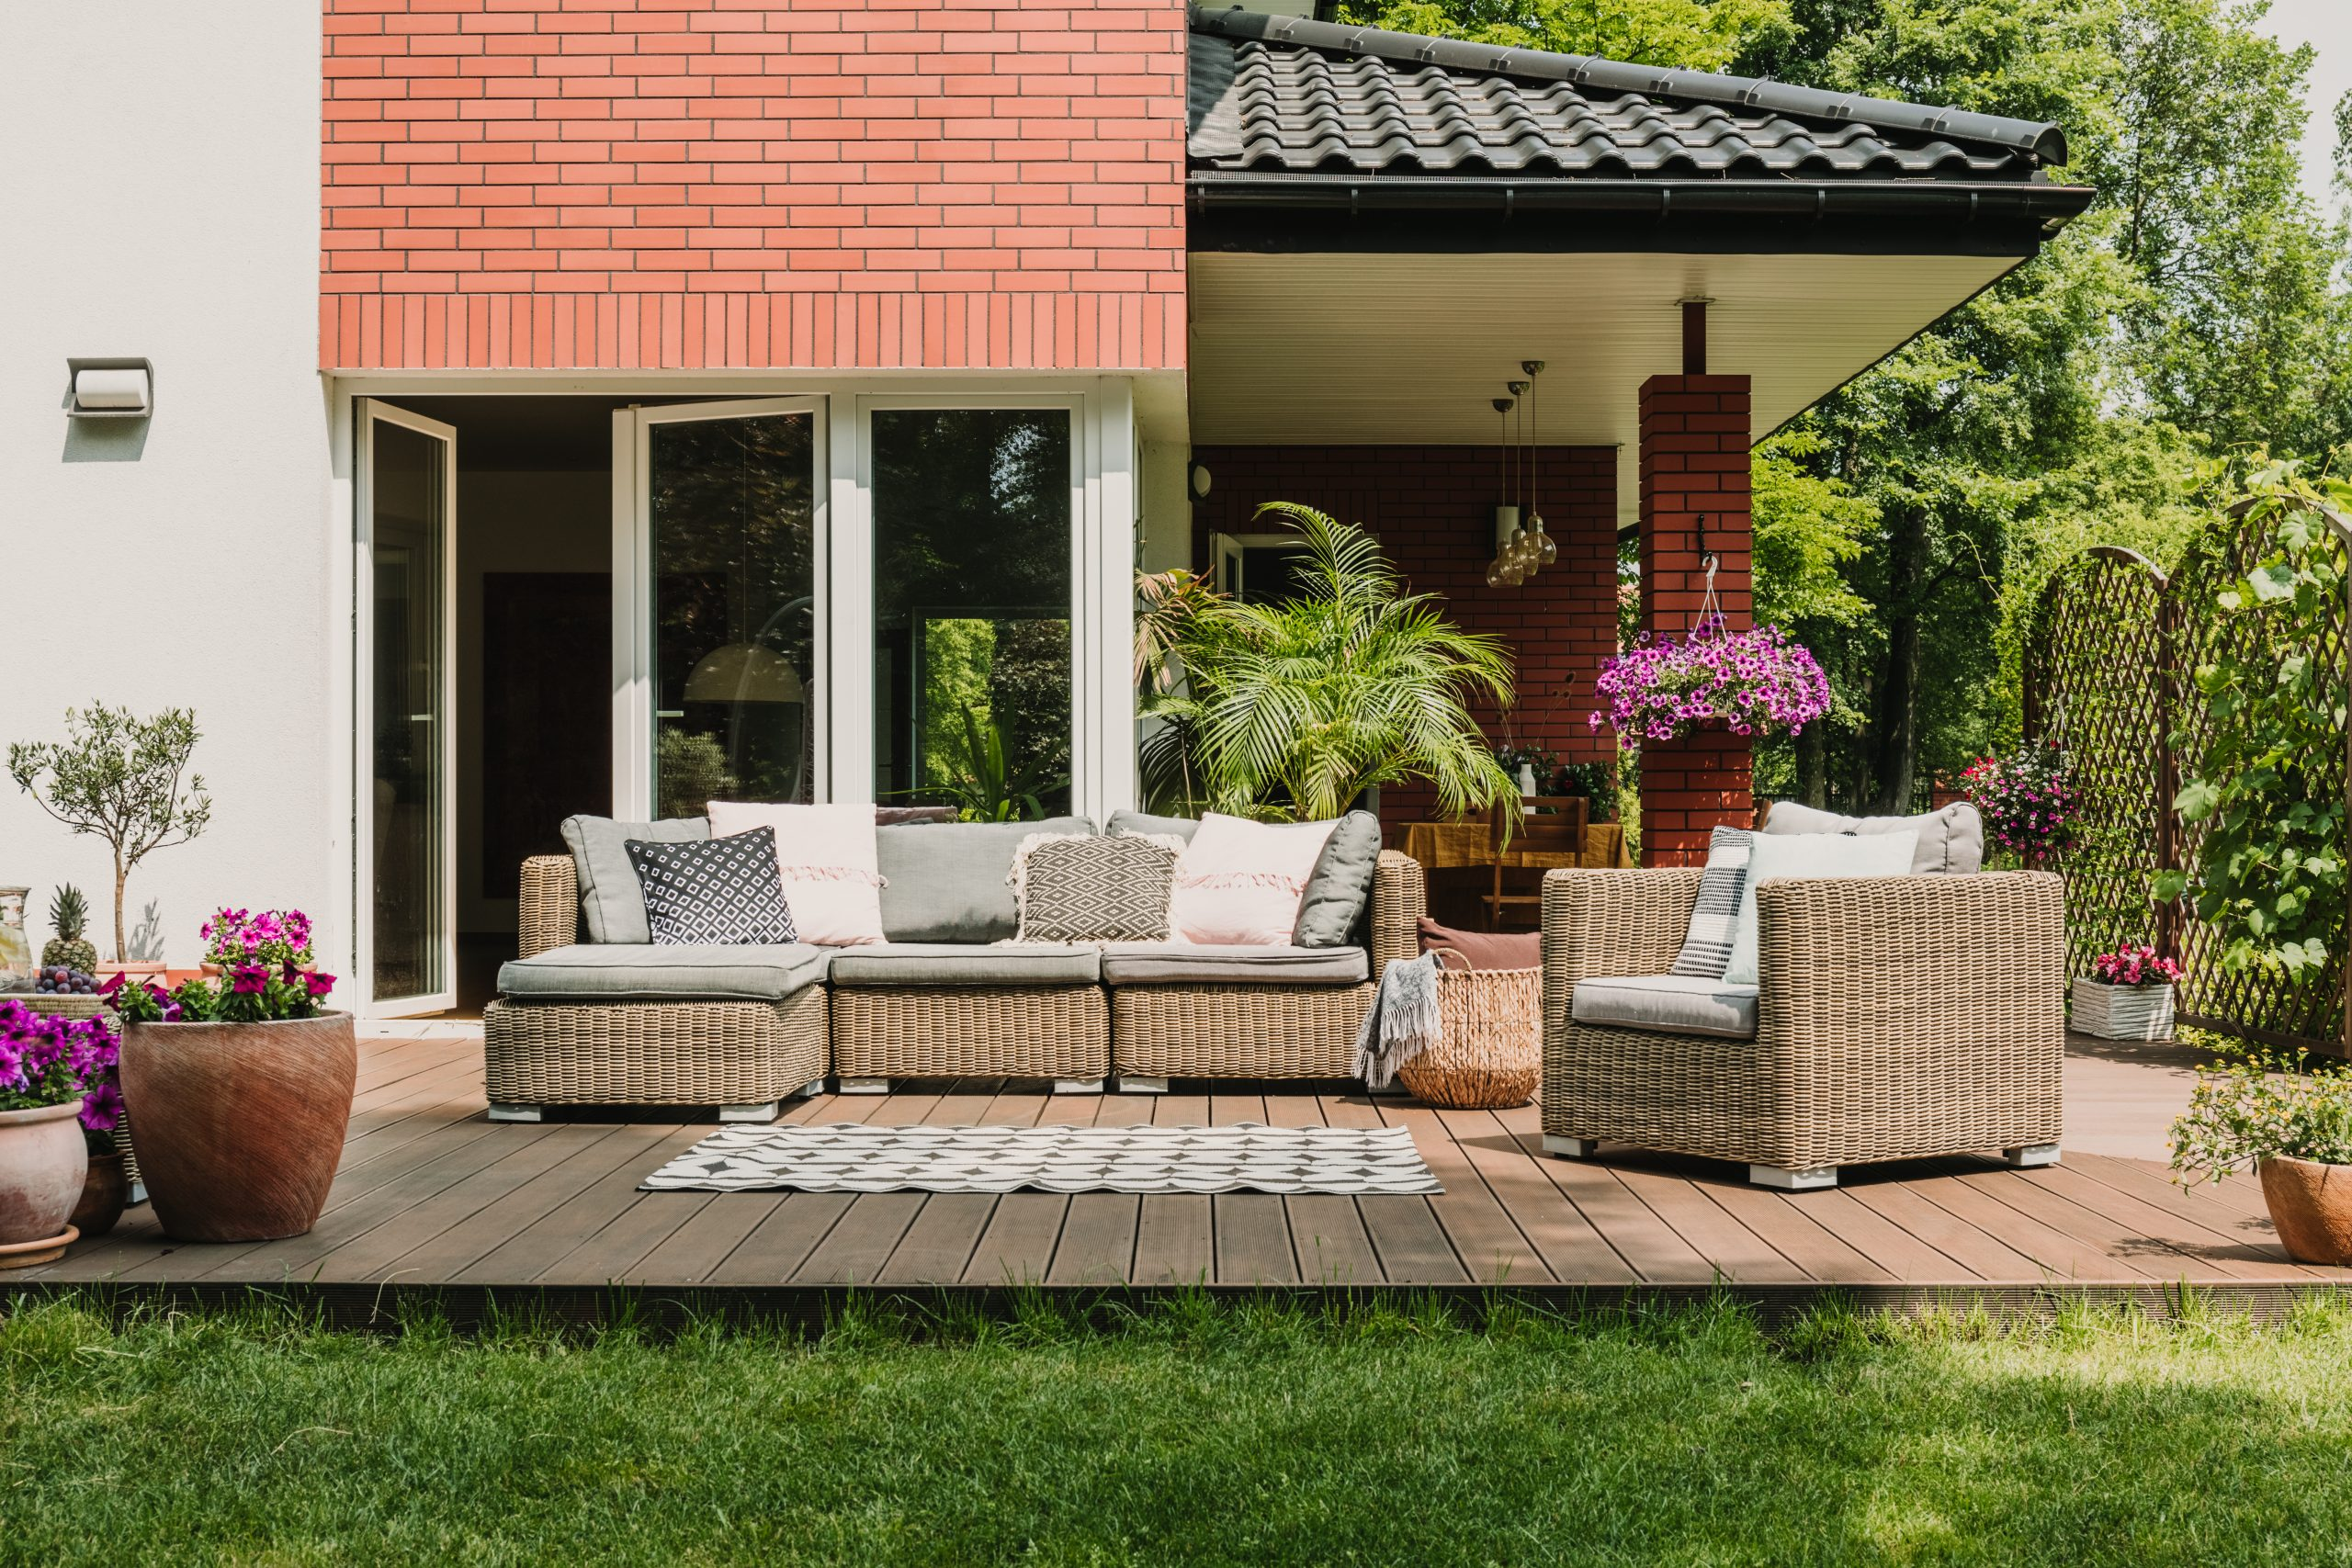 Home and Garden brands